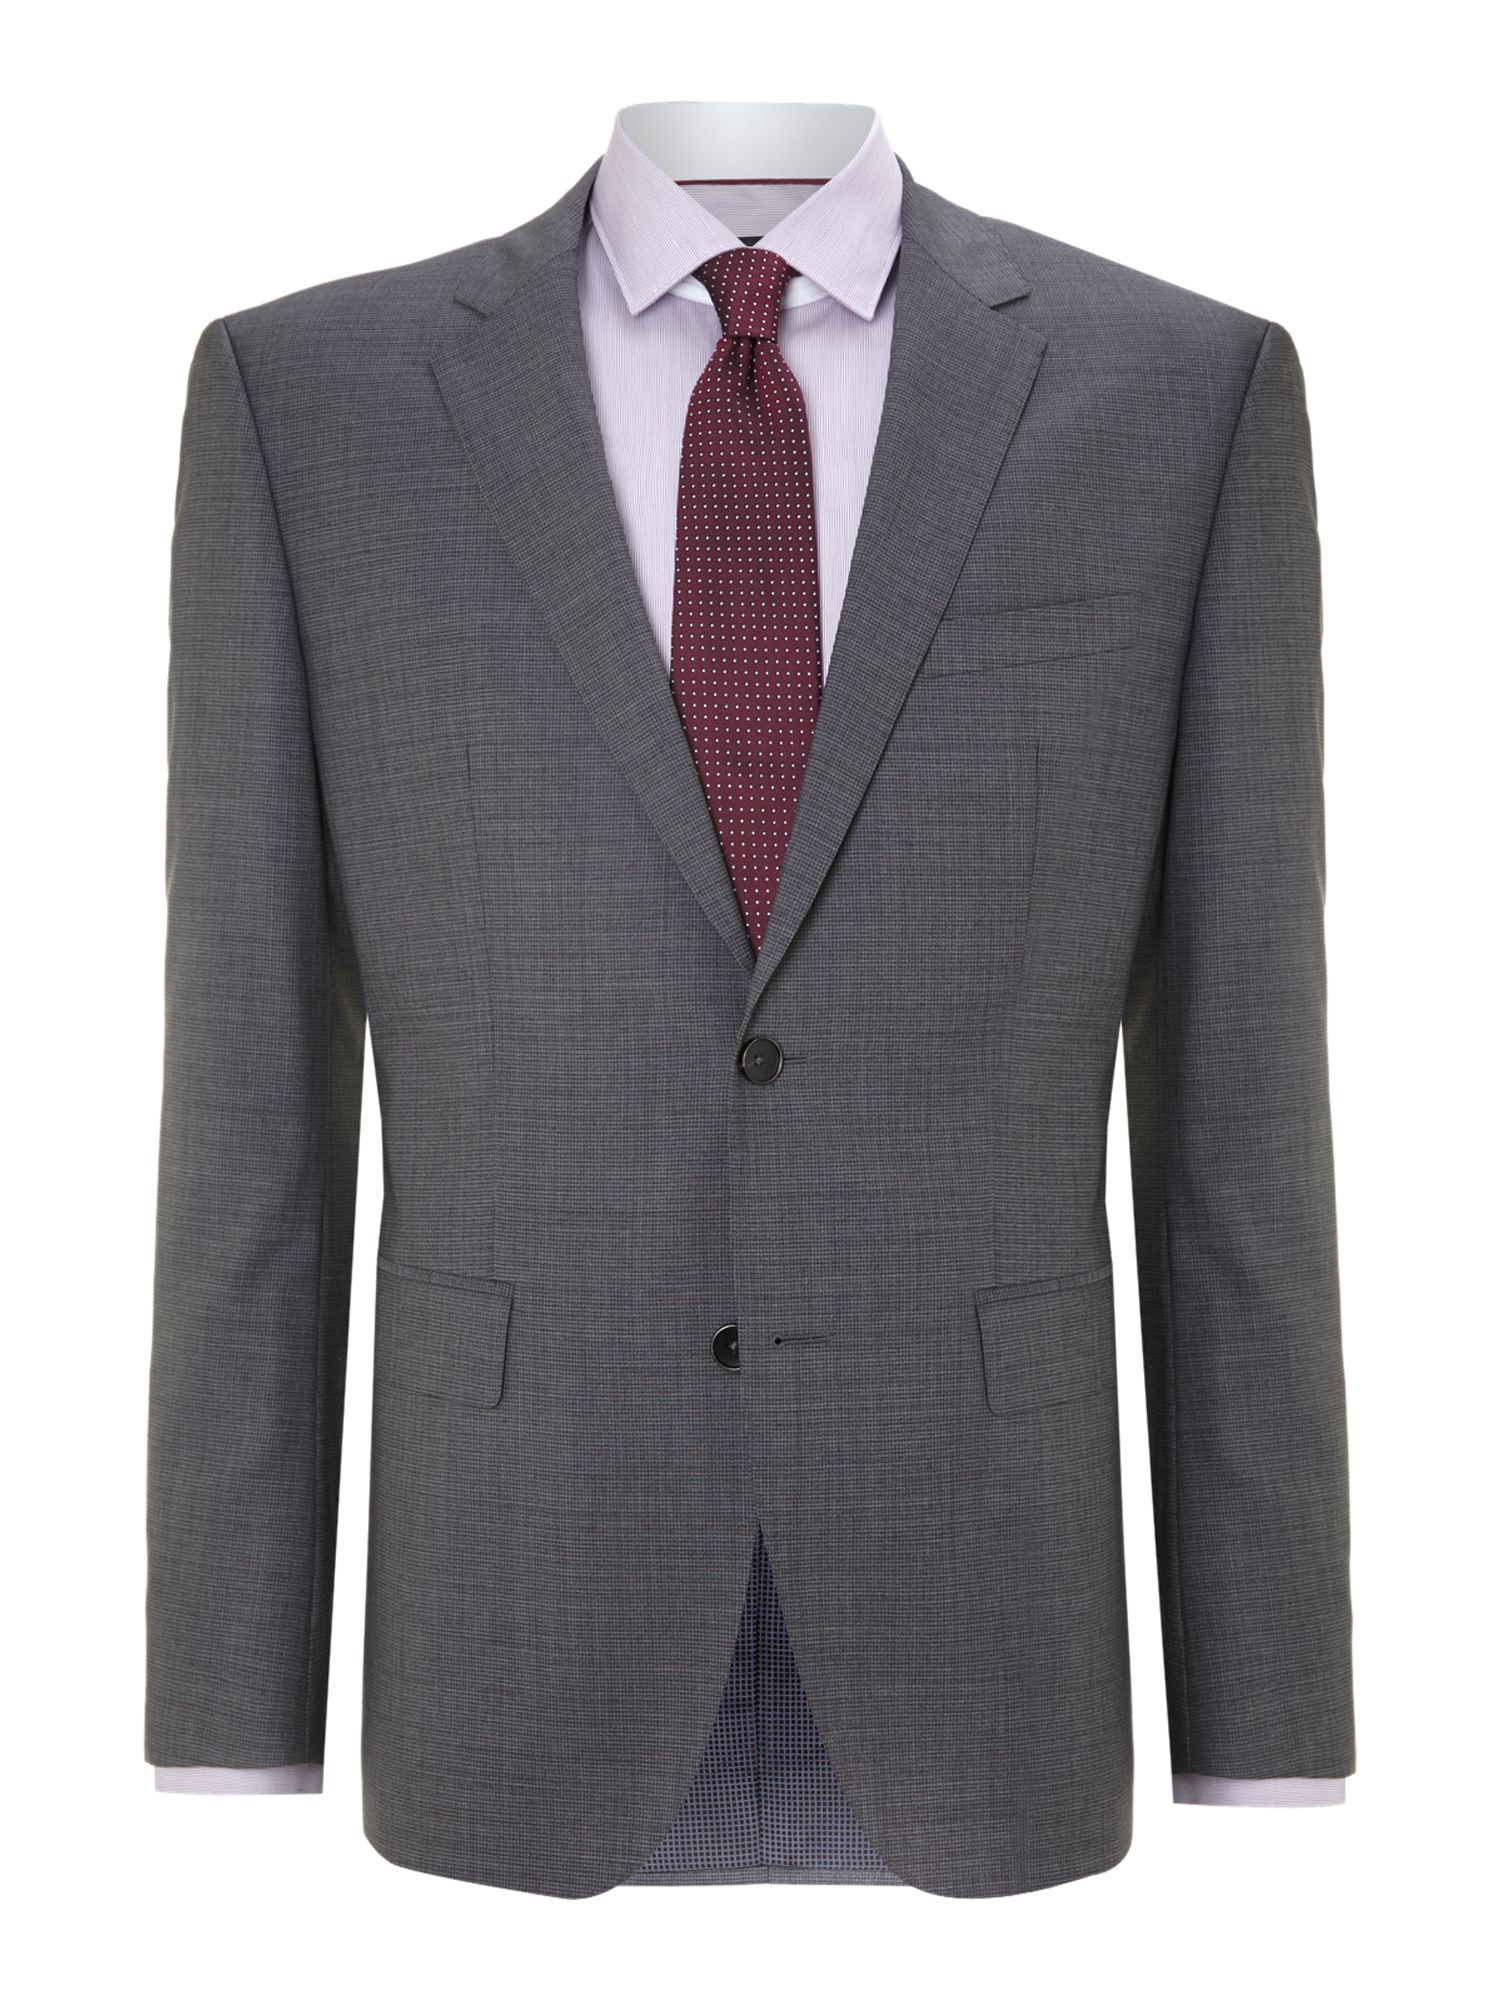 Keys shaft regular fit textured stretch suit